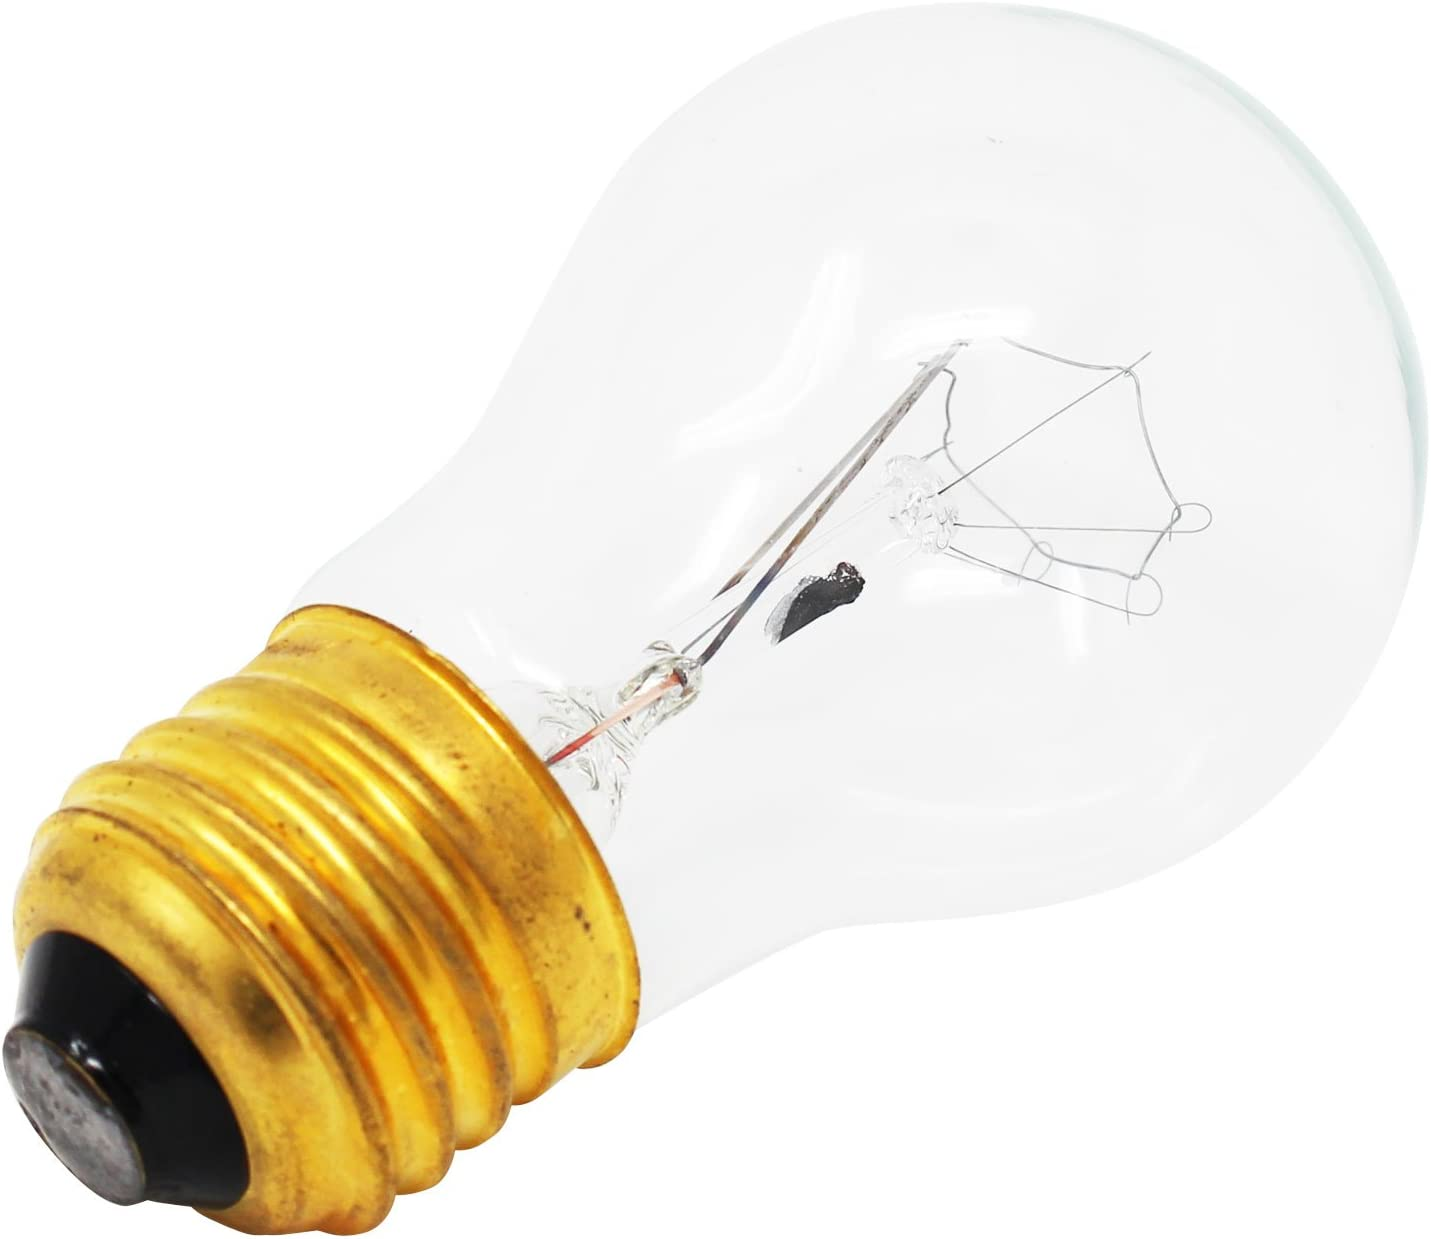 Replacement Max 82% OFF Light Bulb Branded goods for Whirlpool - Wh ED2NHGXRQ01 Compatible